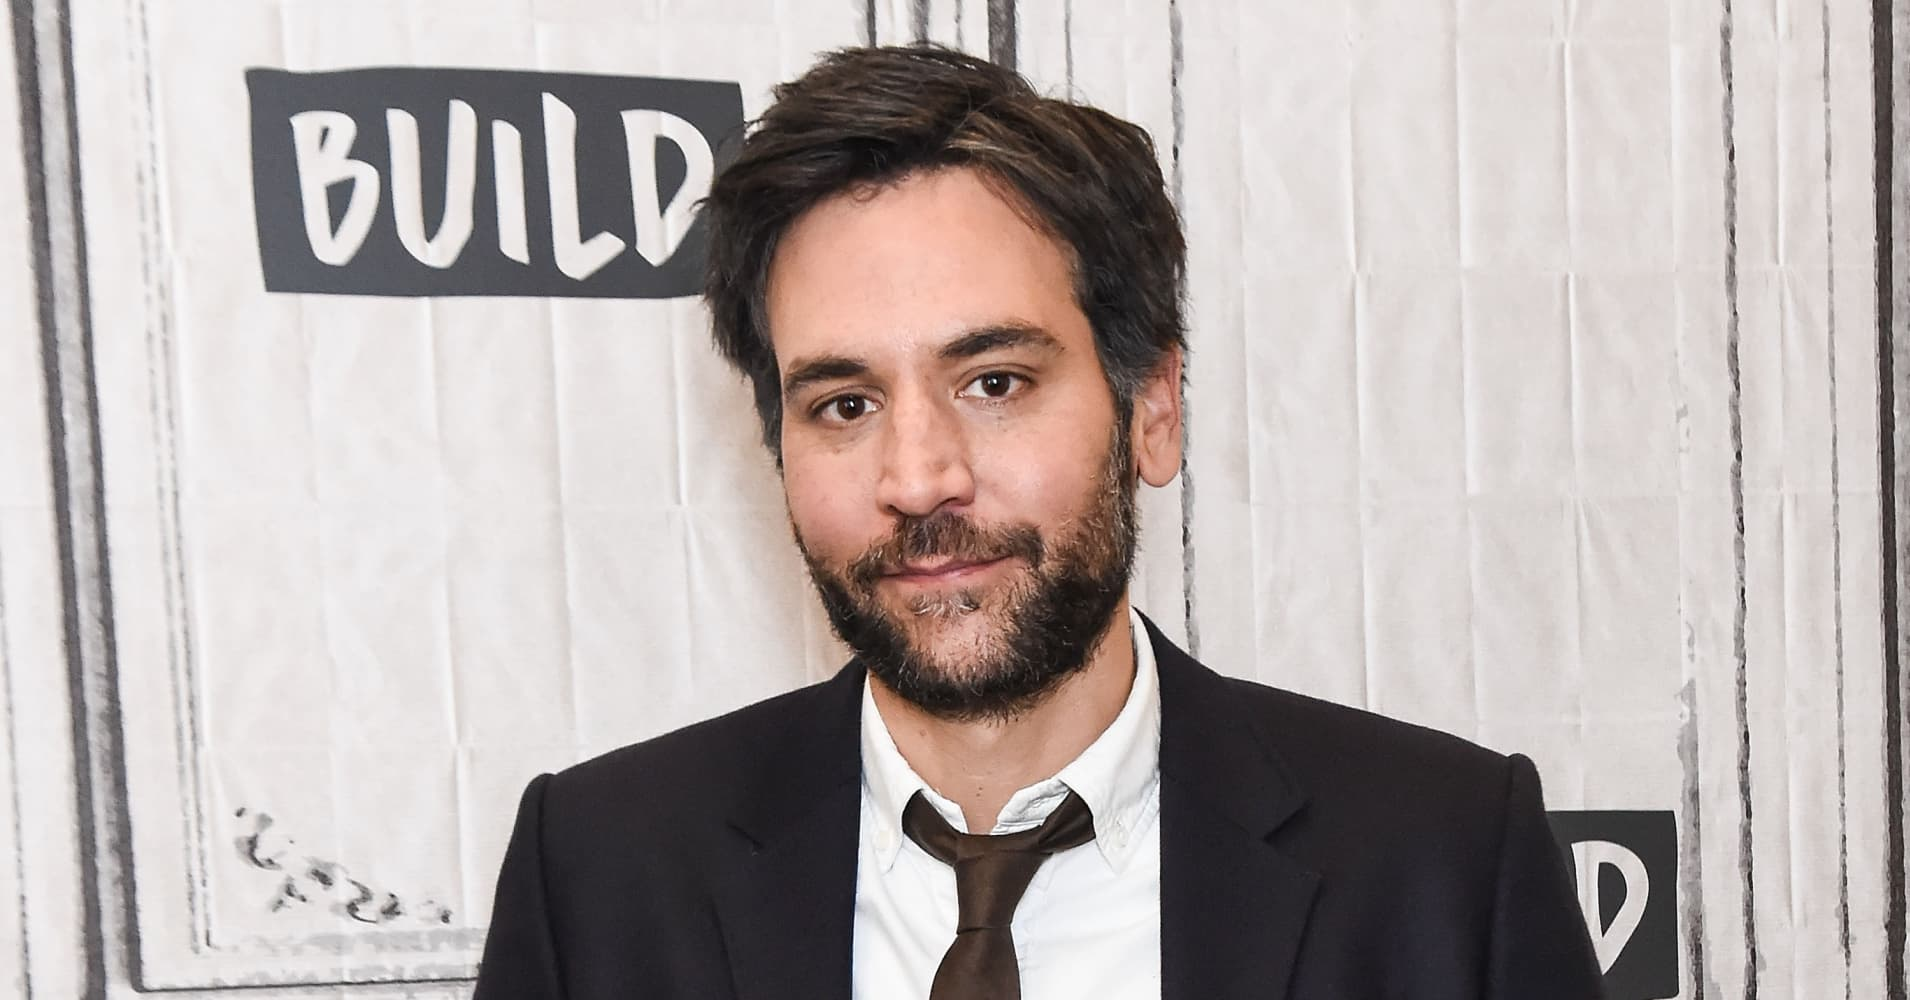 How rise and how i met your mother star josh radnor spends money josh radnor reveals he was still living in a 750 sublet while starring on how i met your mother heres why ccuart Image collections